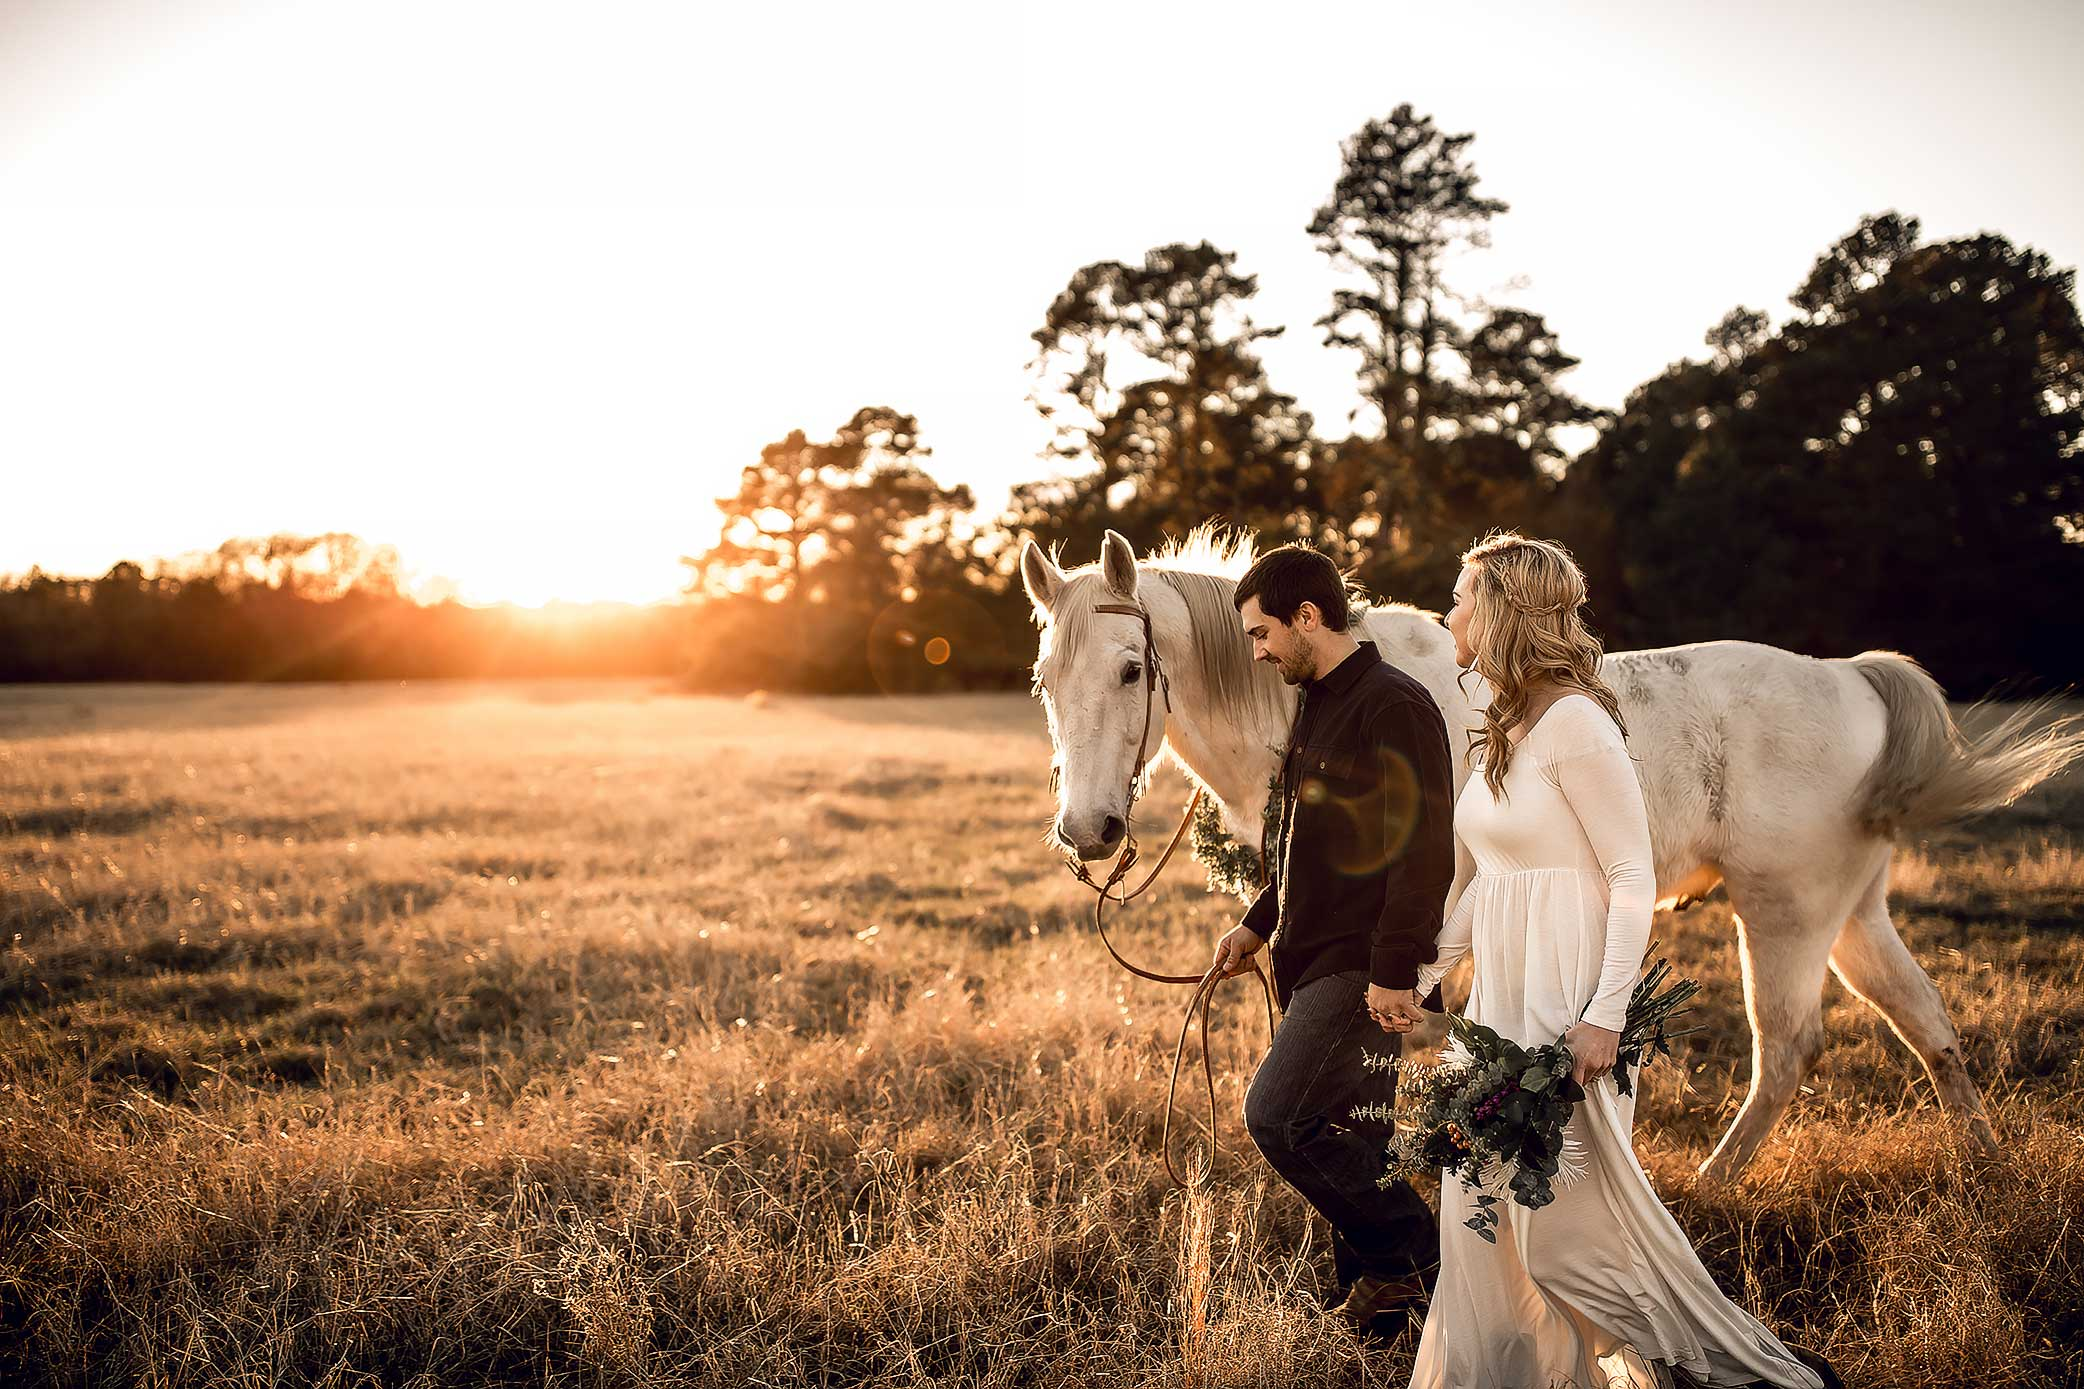 shelby-schiller-photography-couples-sunset-with-horse-and-white-dress.jpg